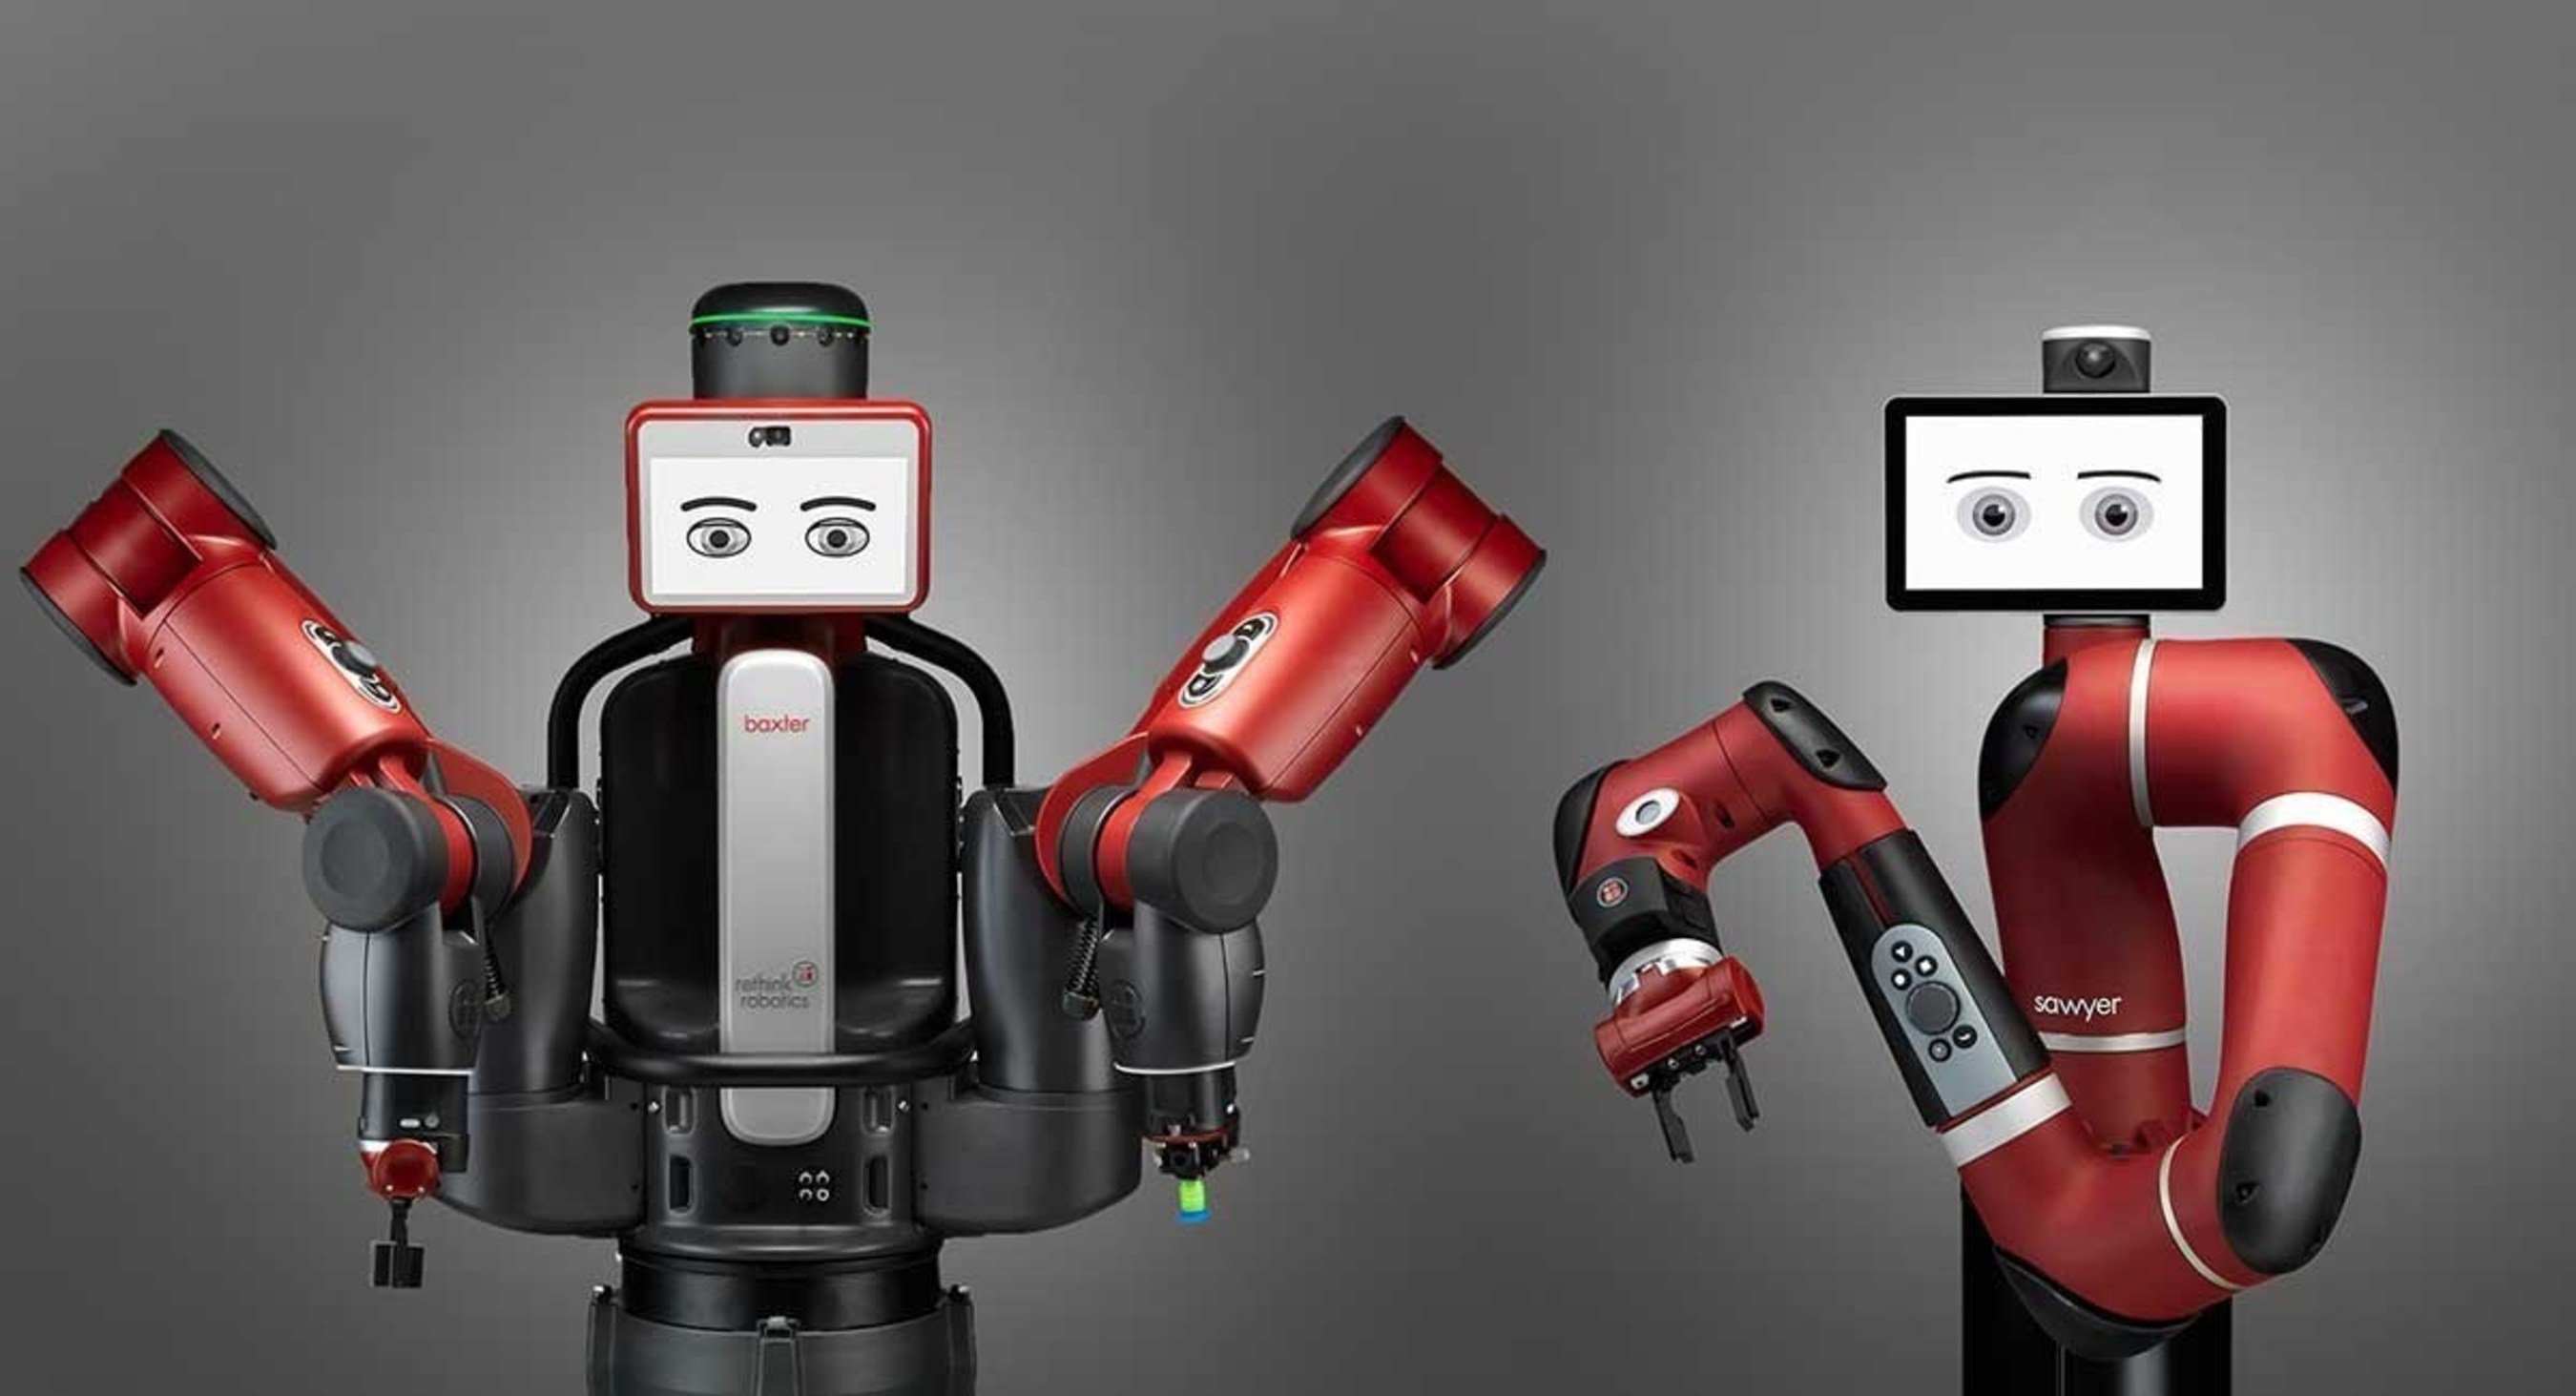 Rethink Robotics teams with Epoch Foundation to bring collaborative robots to Asia